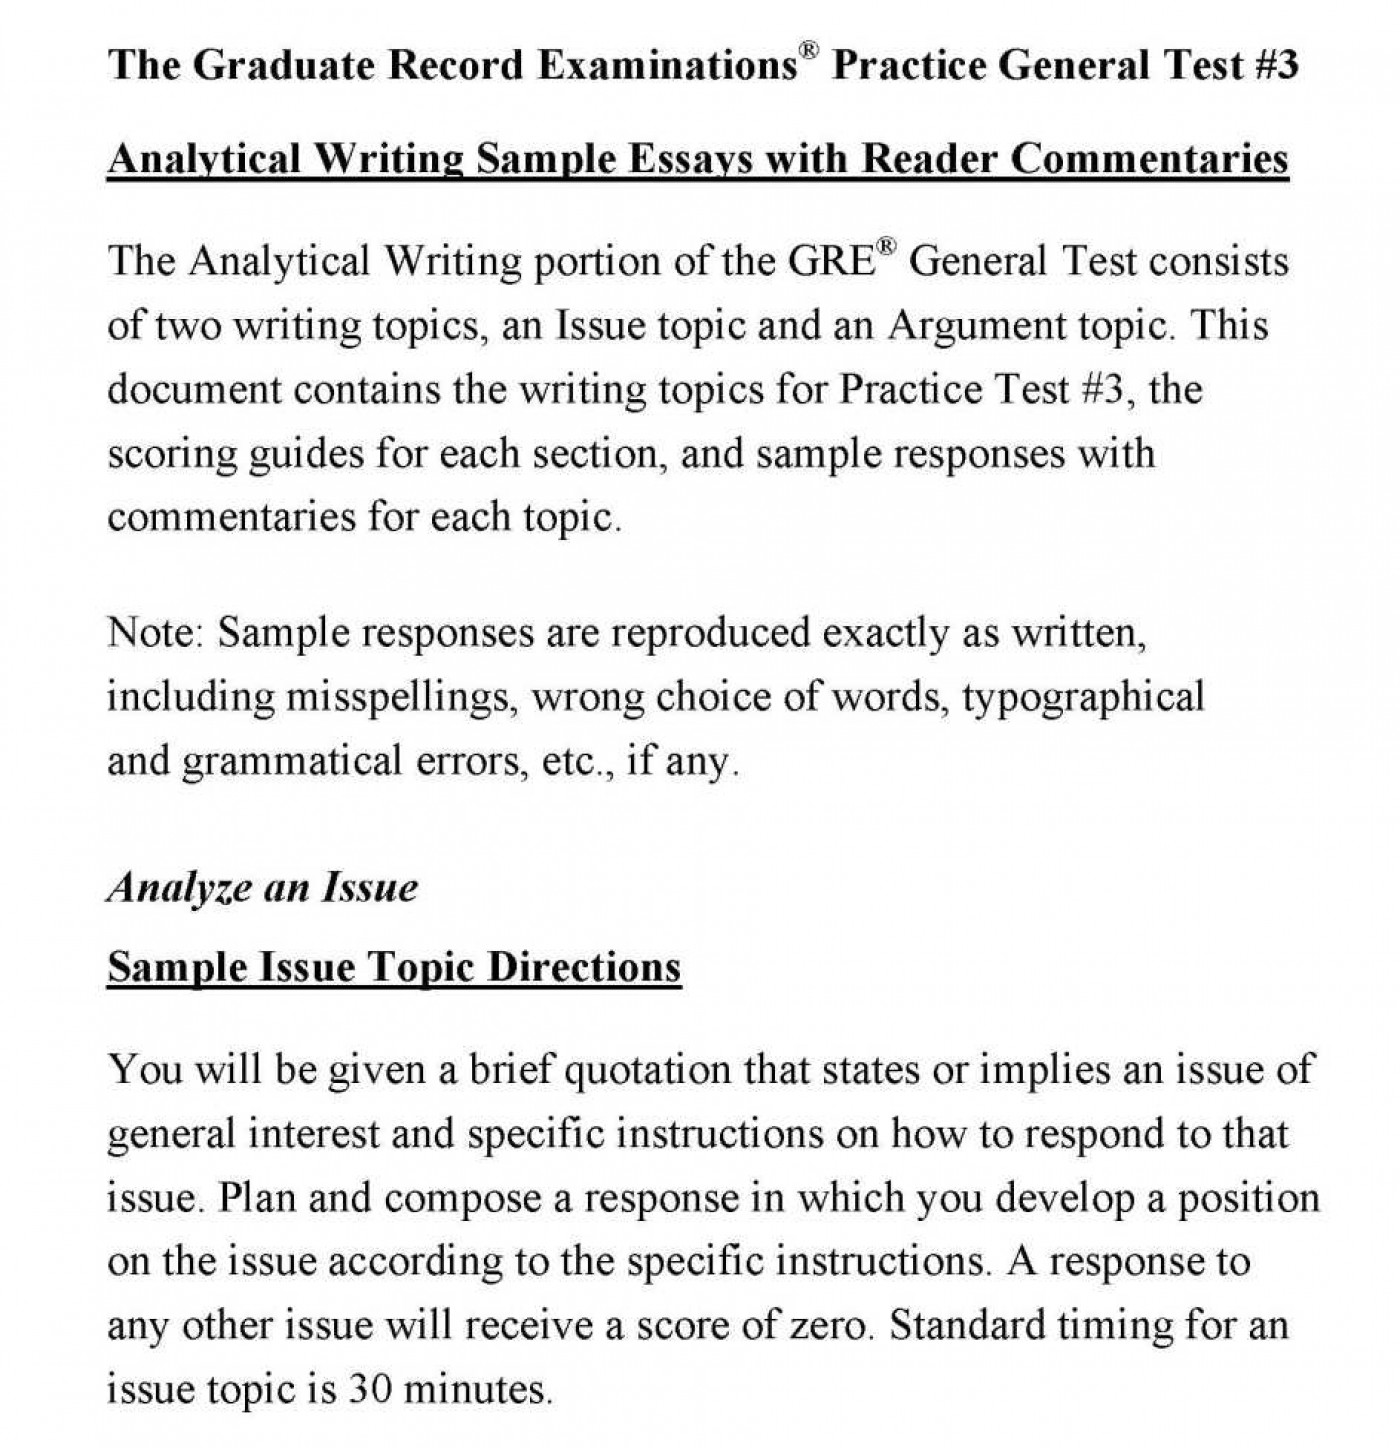 007 Essay Example How To Write Gre Analytical Writing Samples Stunning A Issue Great Essays 1400